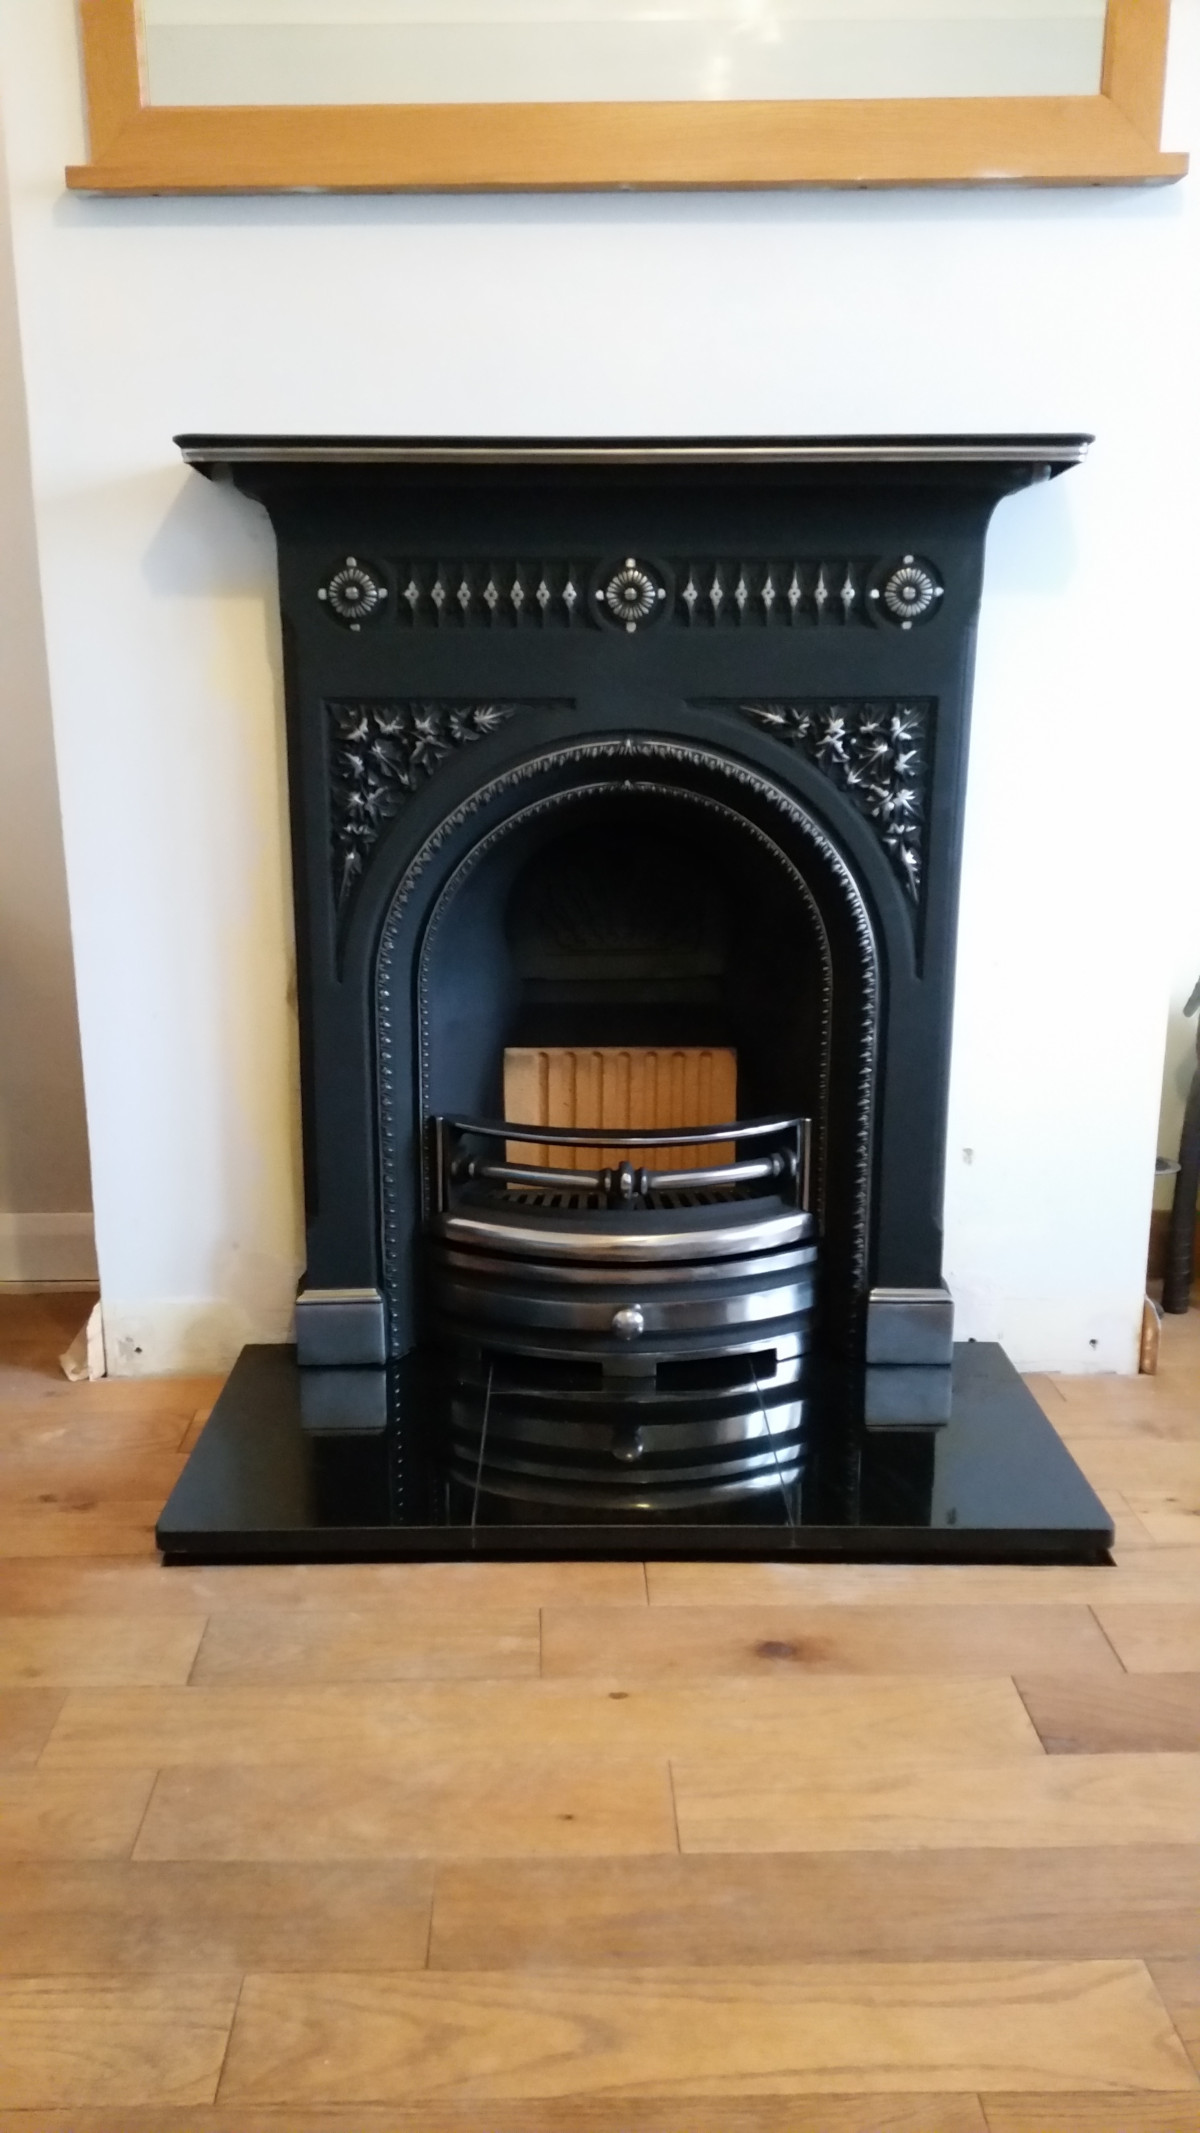 Harewood Hi-Light Cast Iron Gas Fireplace